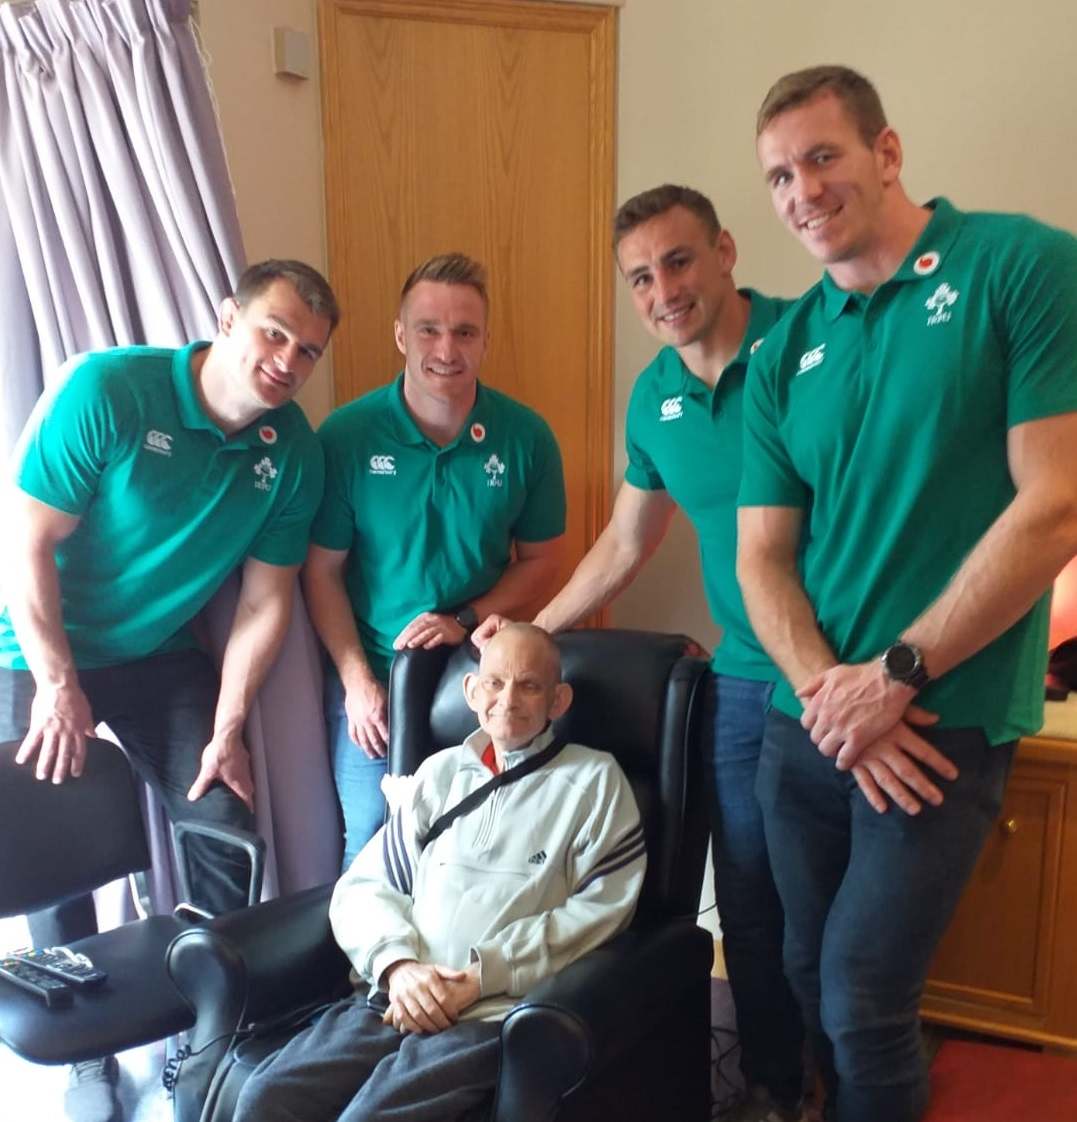 Members of the Ireland Squad visit the Galway Hospice